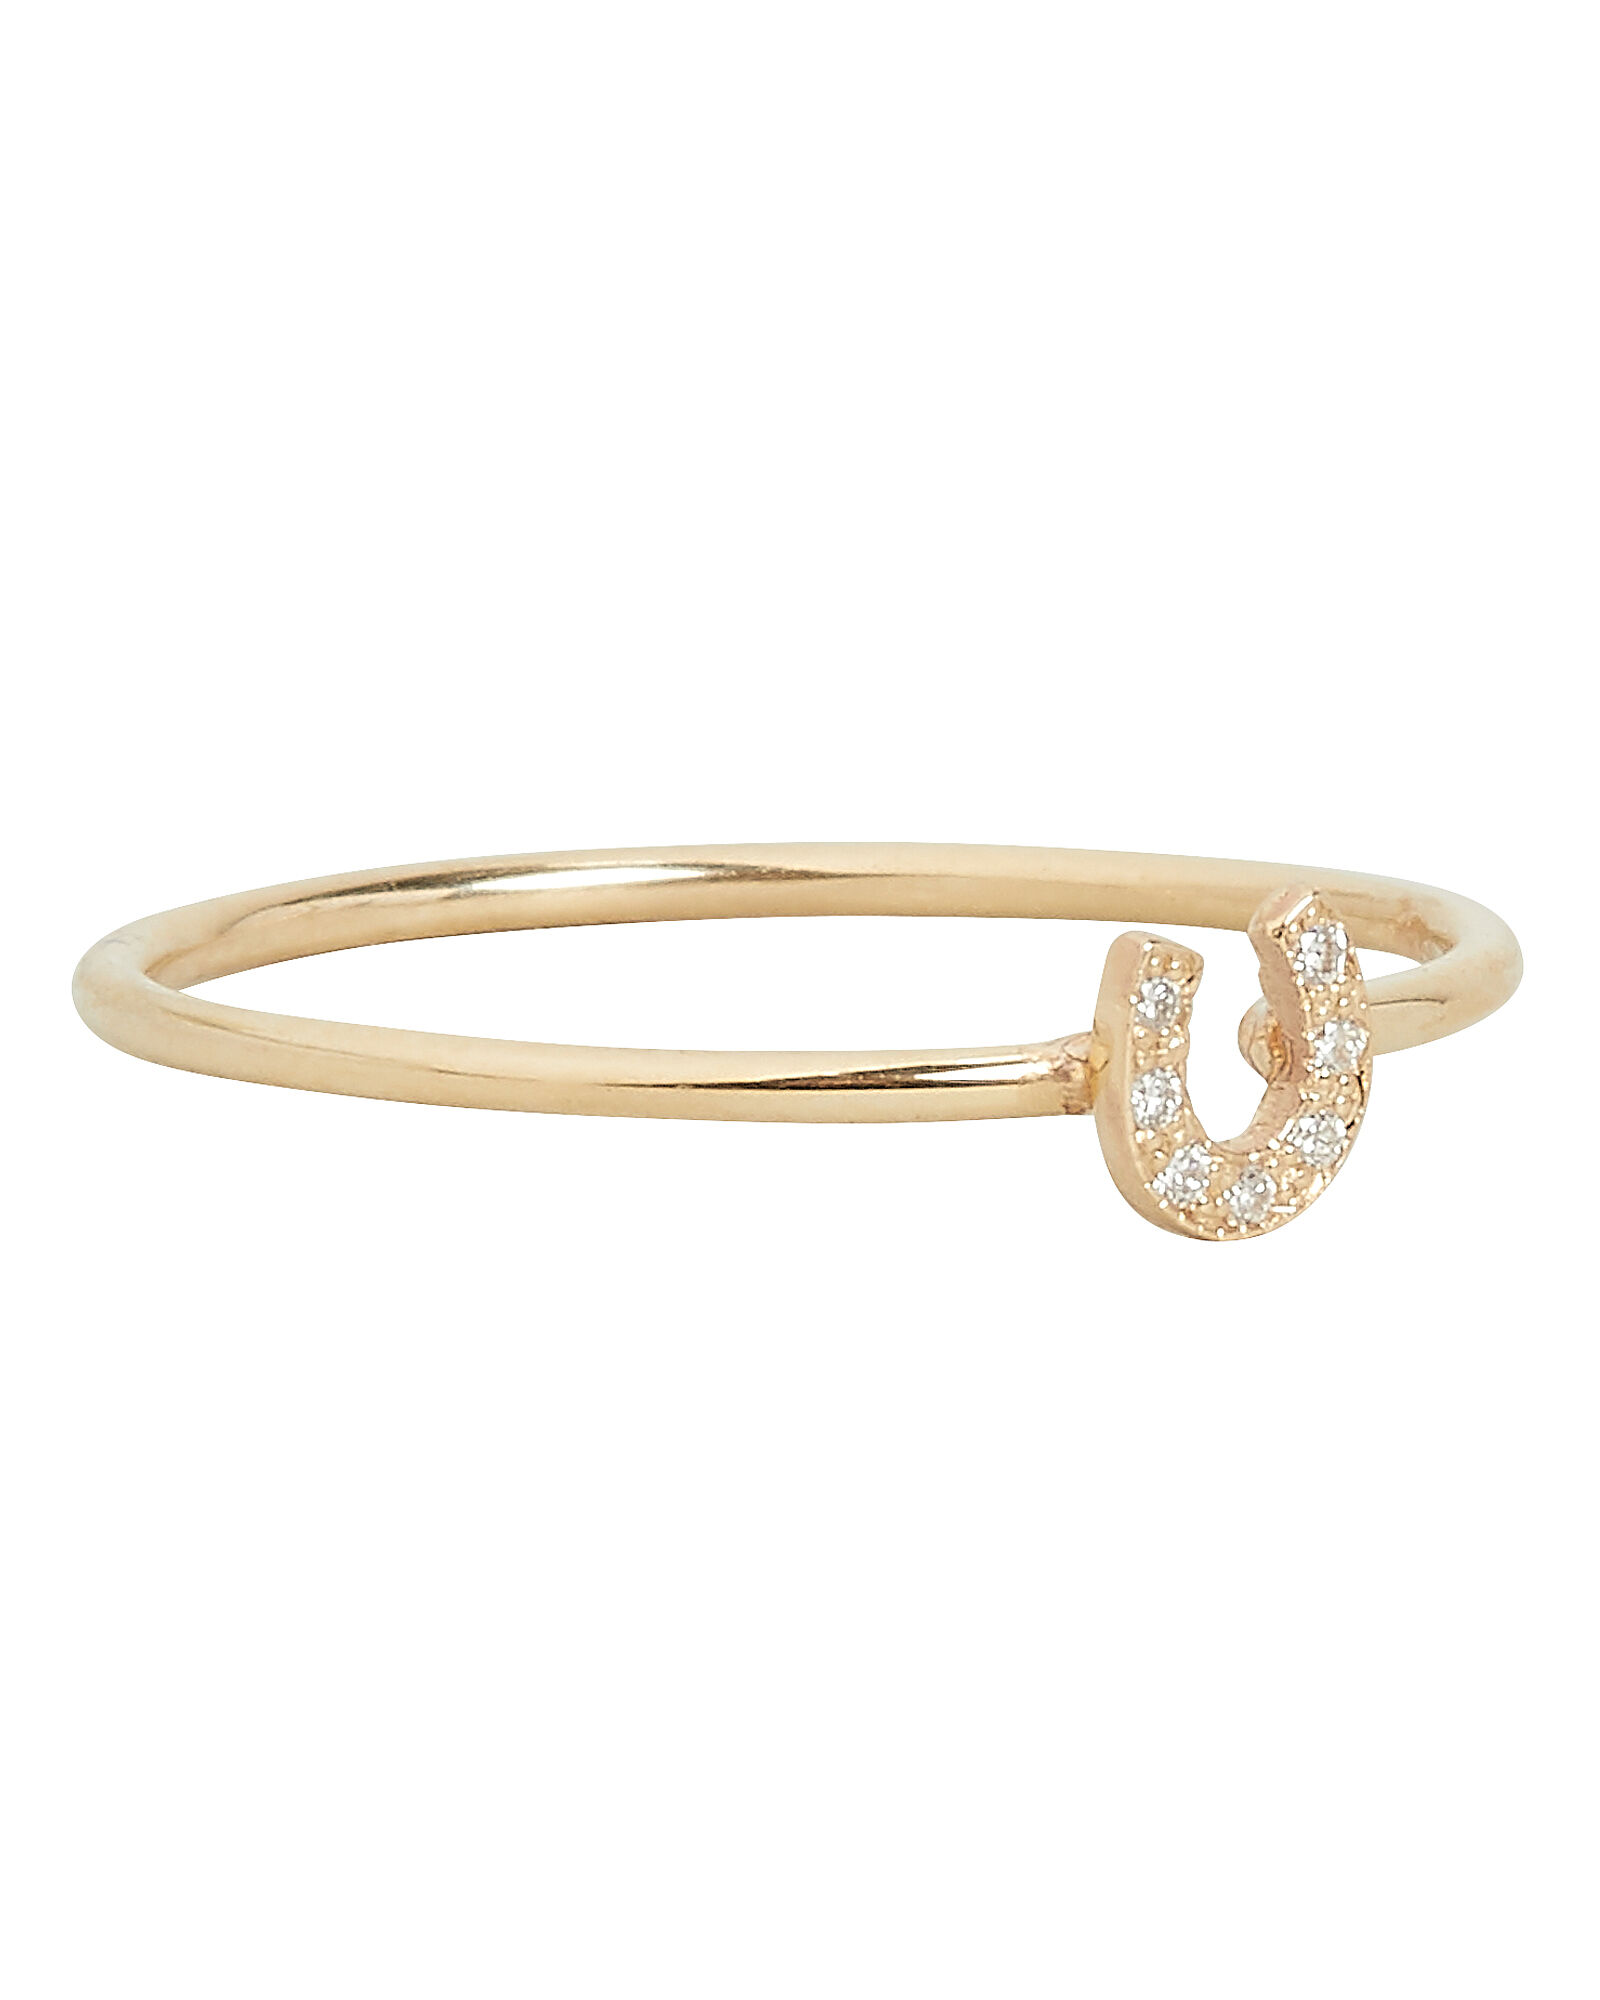 Itty Bitty Horseshoe Ring, GOLD, hi-res